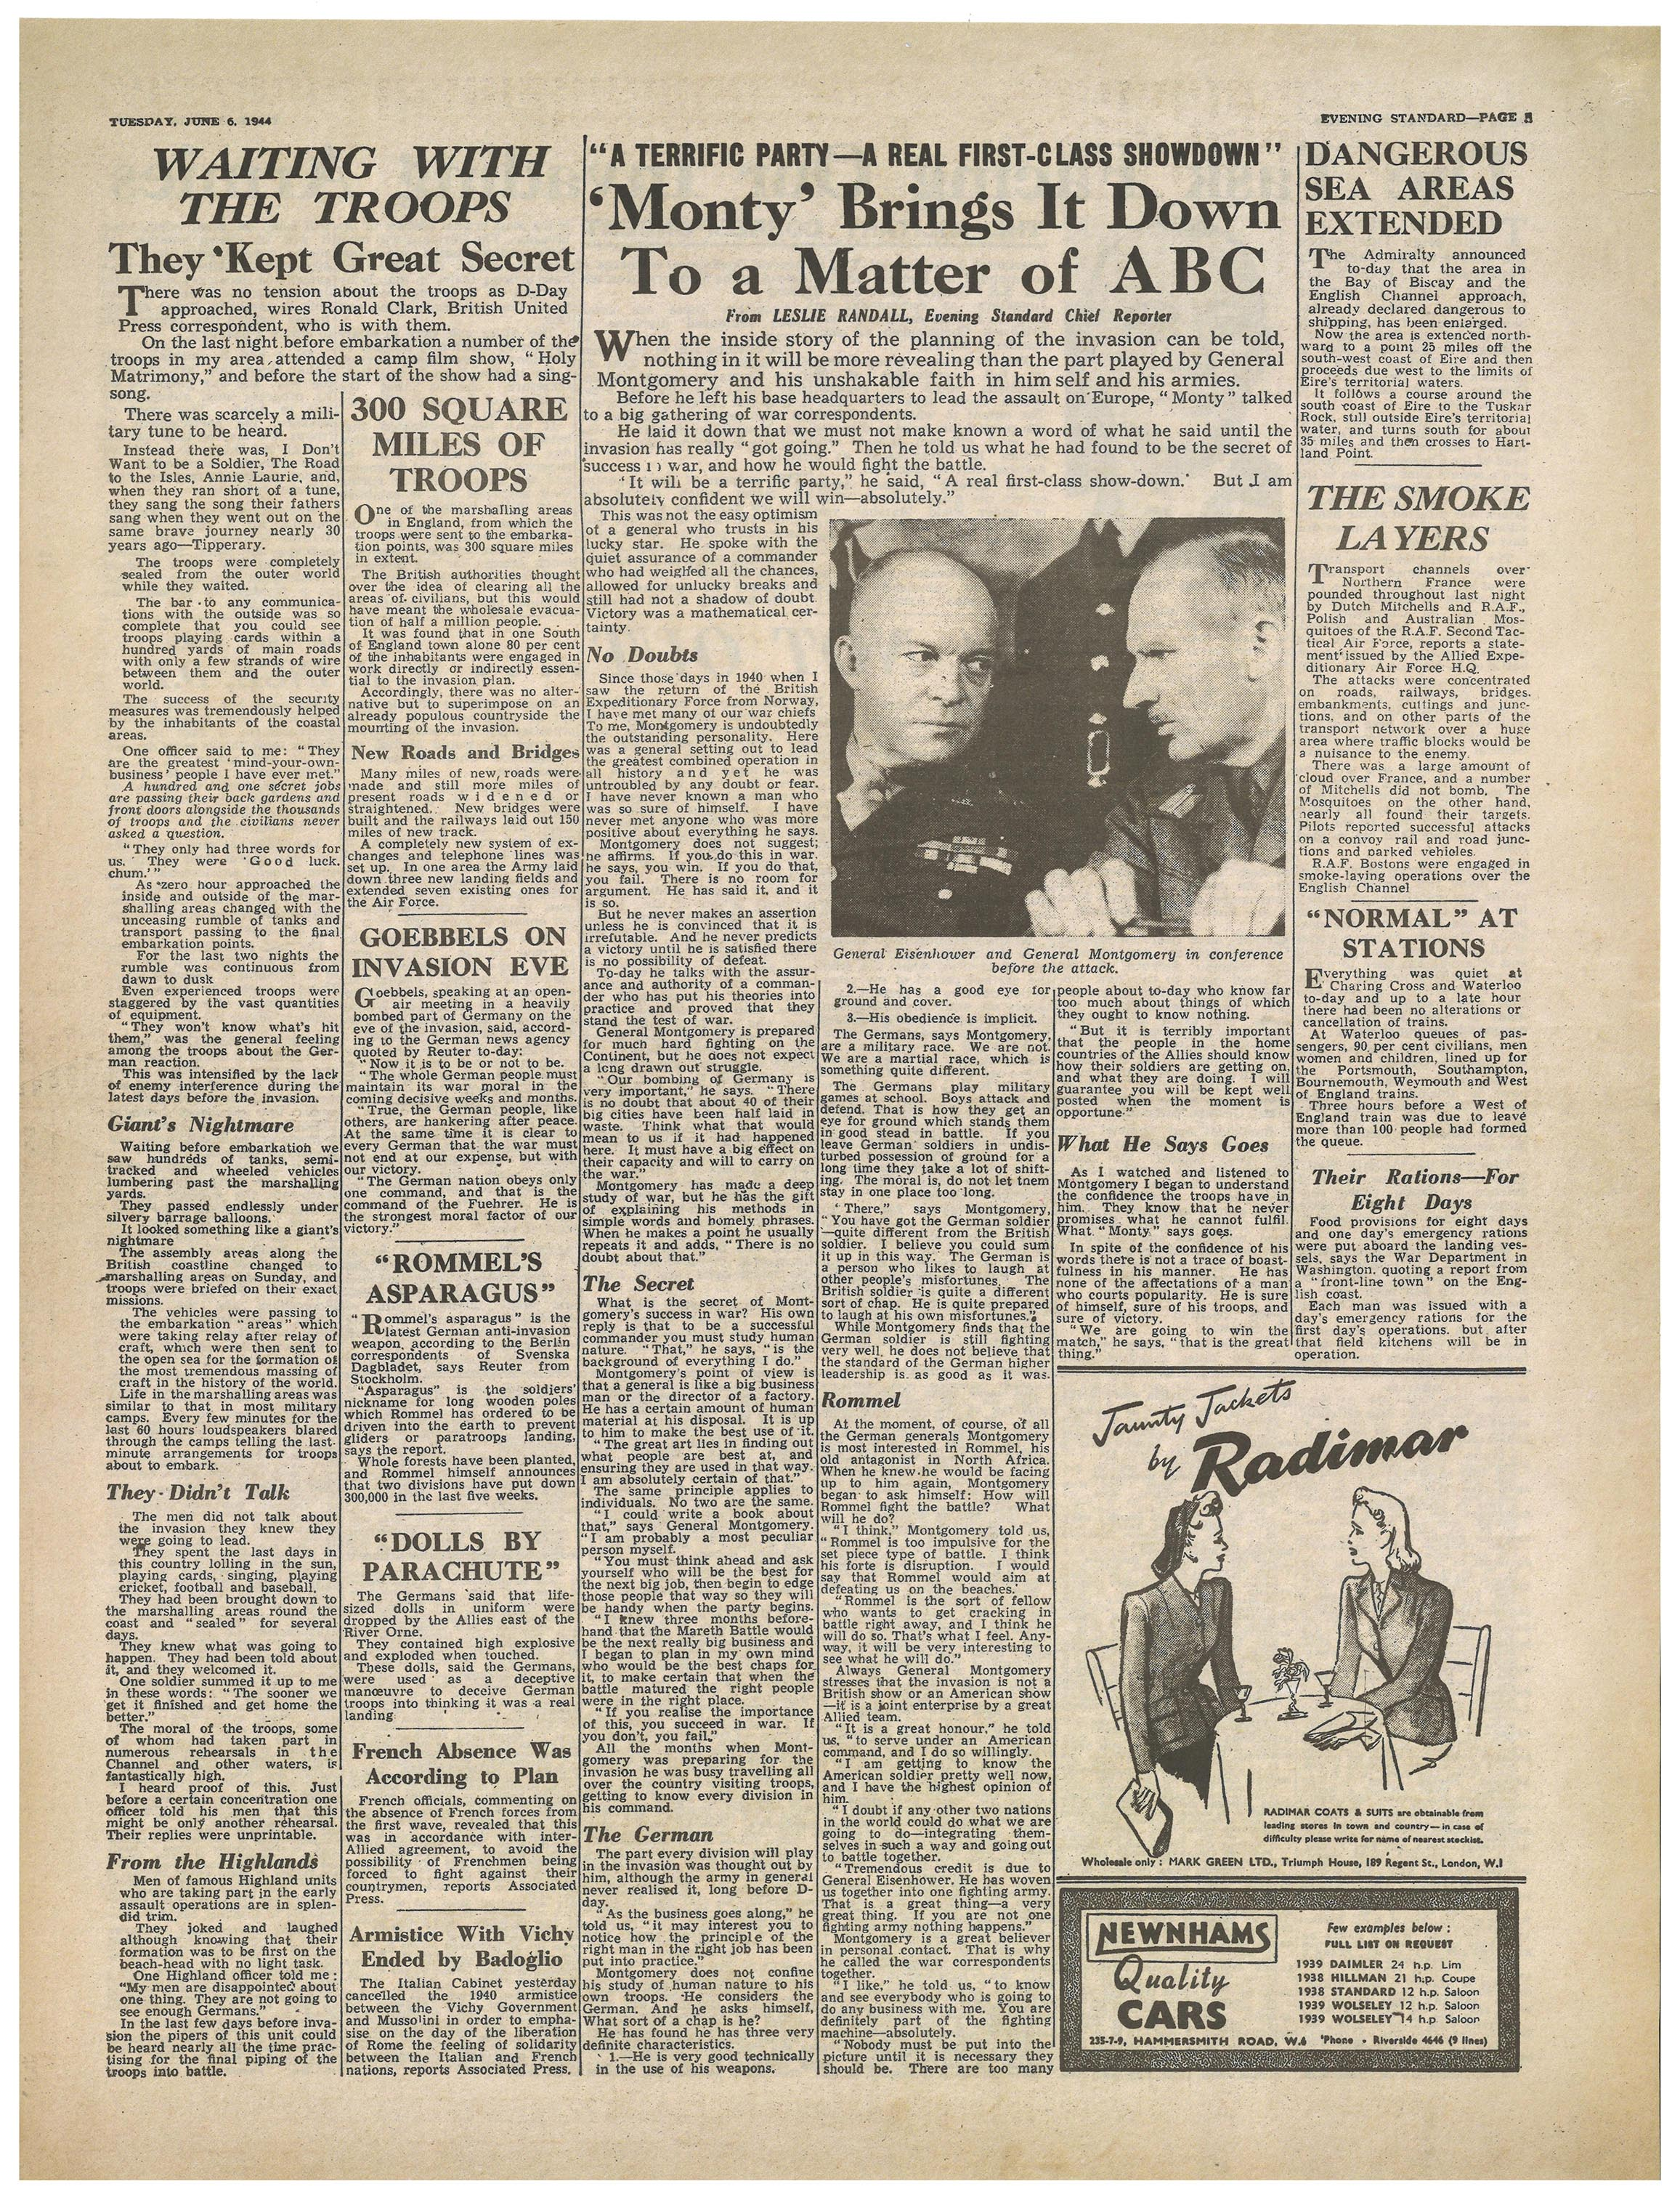 D Day Newspapers Evening Standard June 6th 1944 Page 5